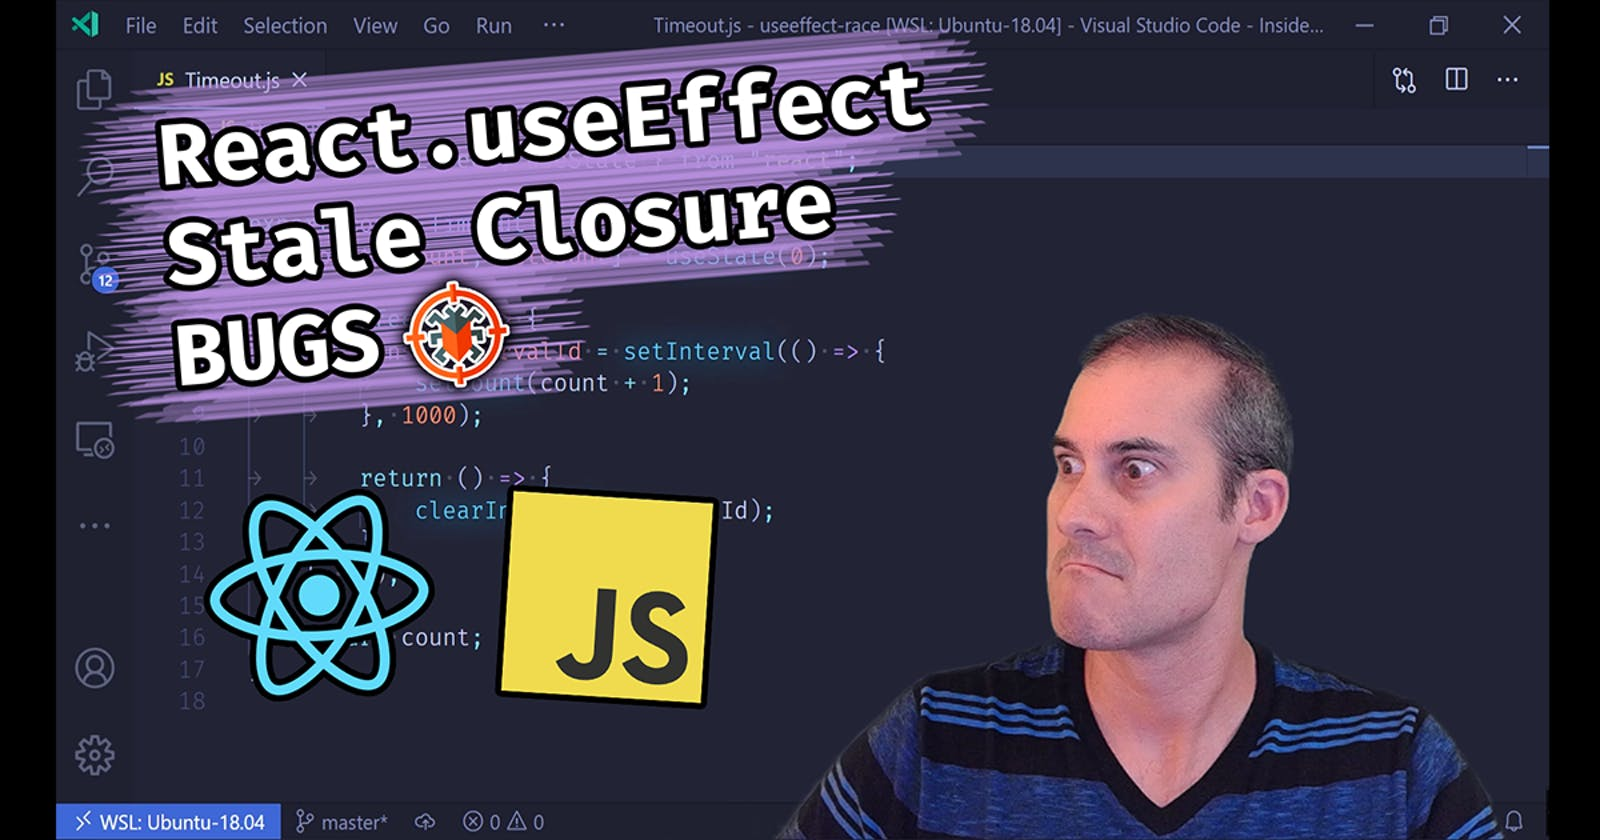 BEWARE of React.useEffect Race Condition 🐛 BUGS